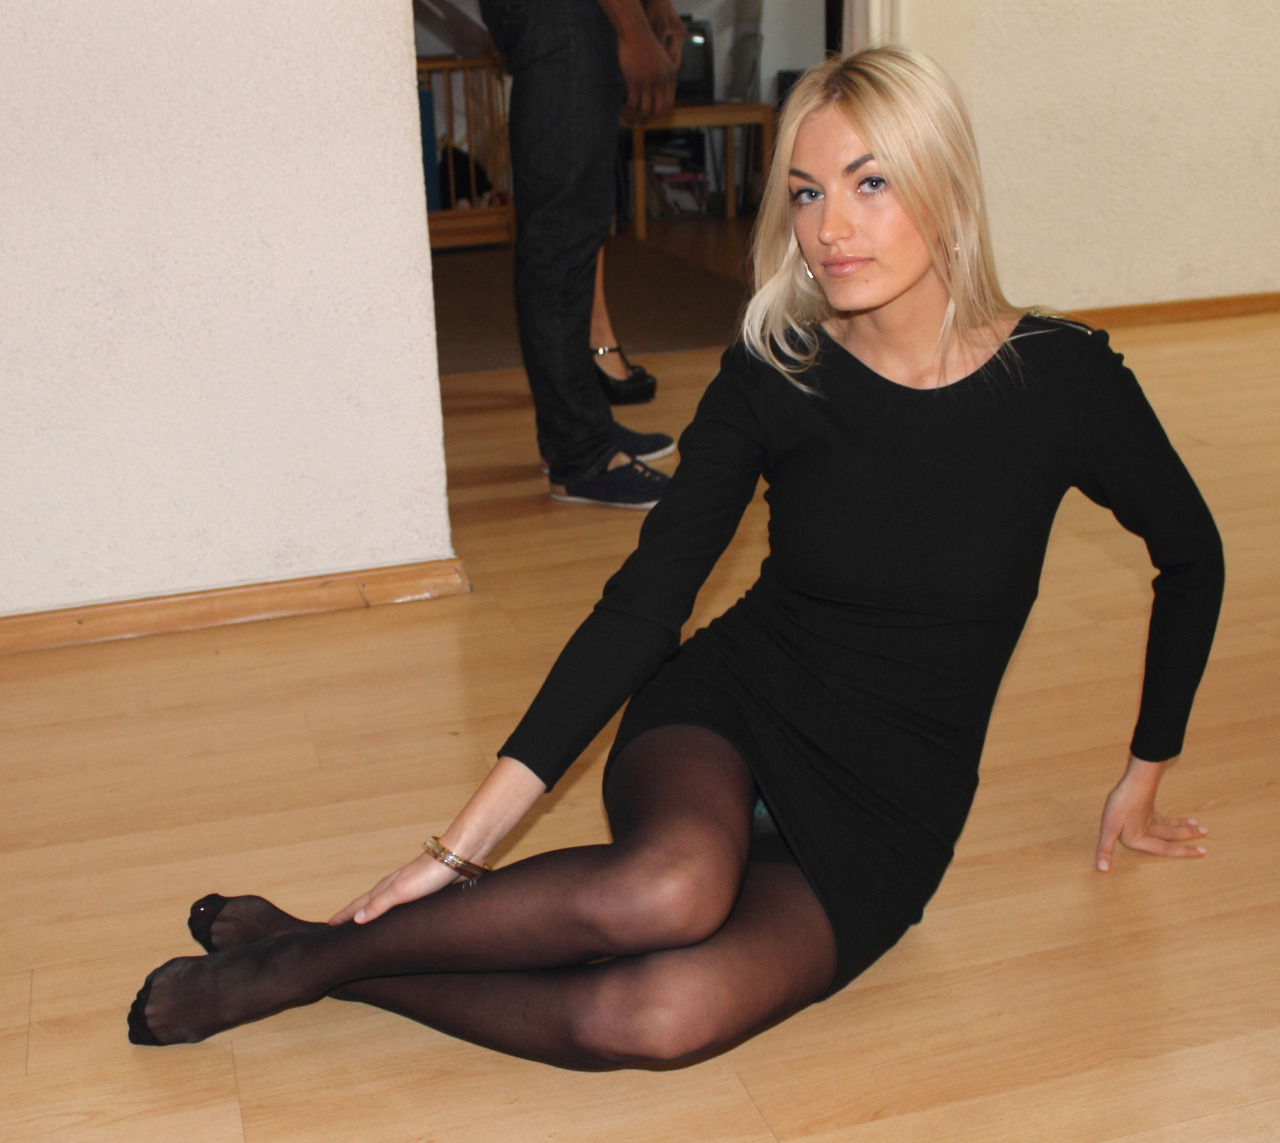 Blonde, barefoot and with black dress (III)